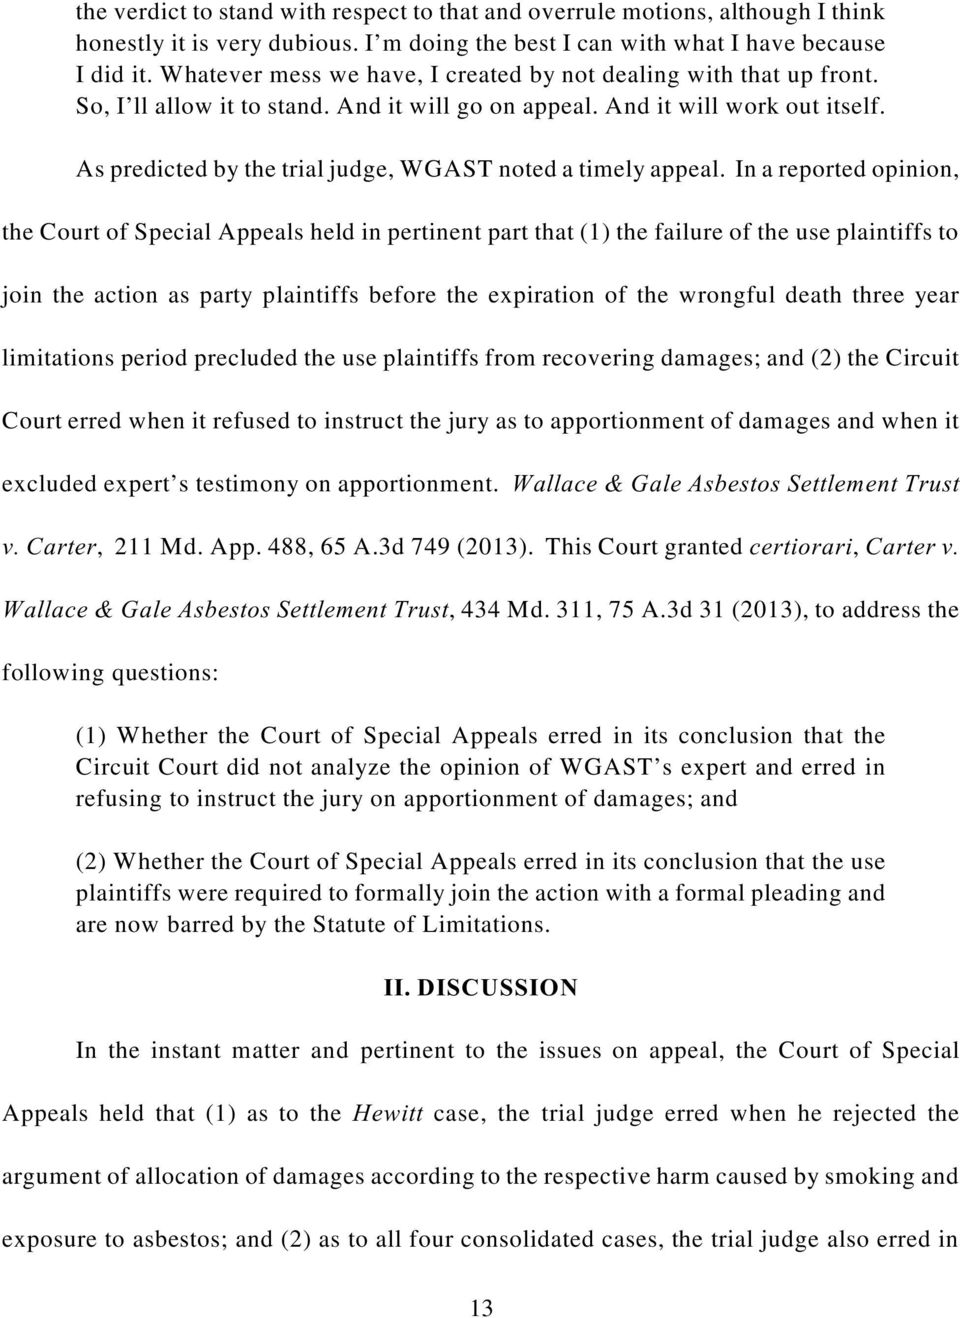 As predicted by the trial judge, WGAST noted a timely appeal.